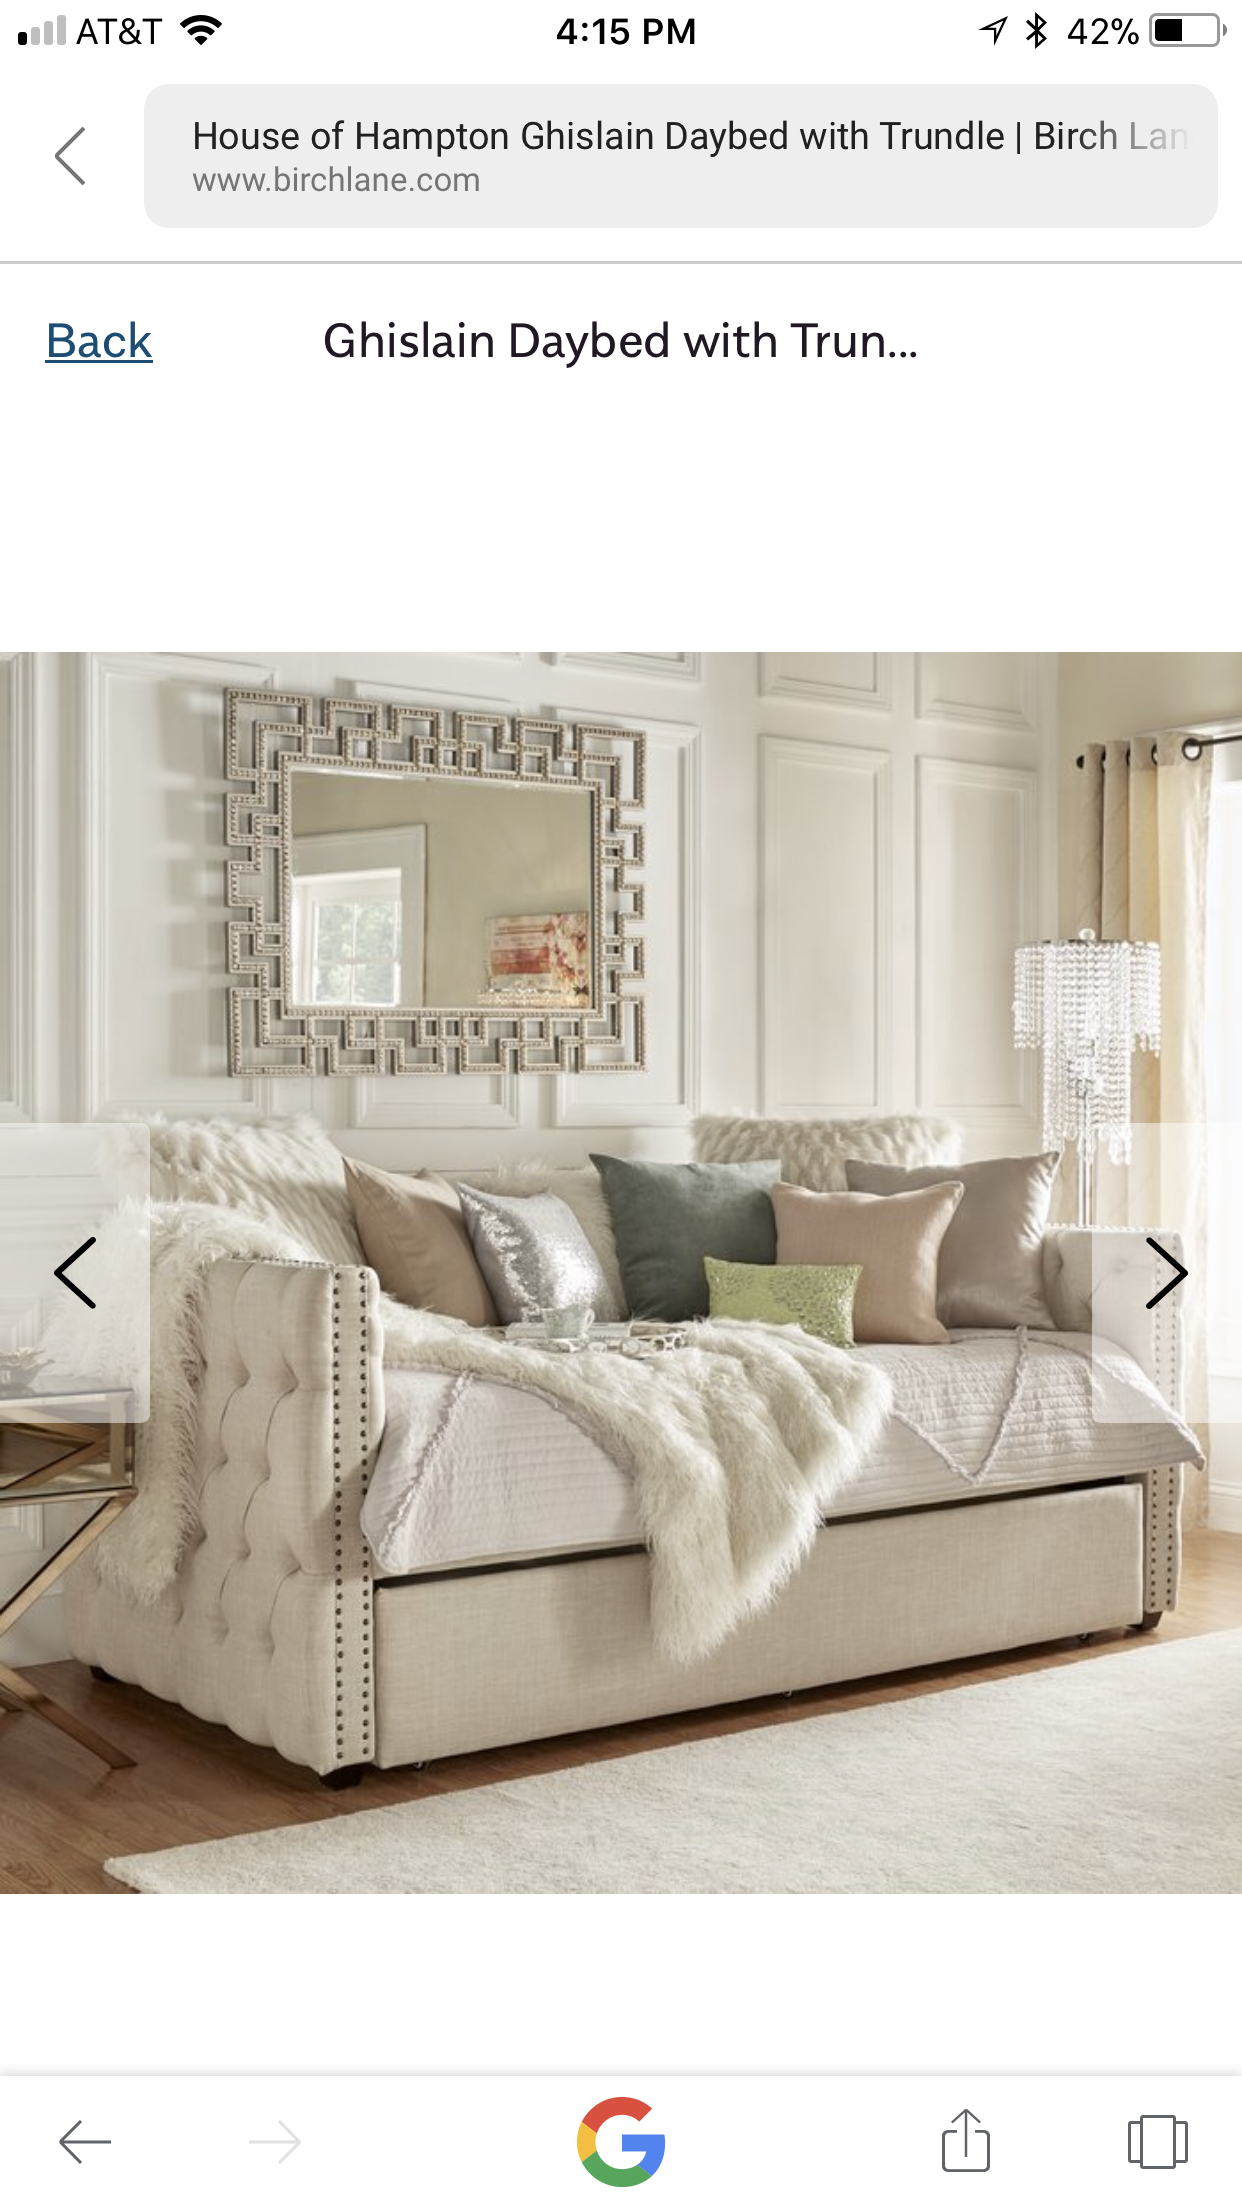 Love this for Caroline's bed. Is it too big for room